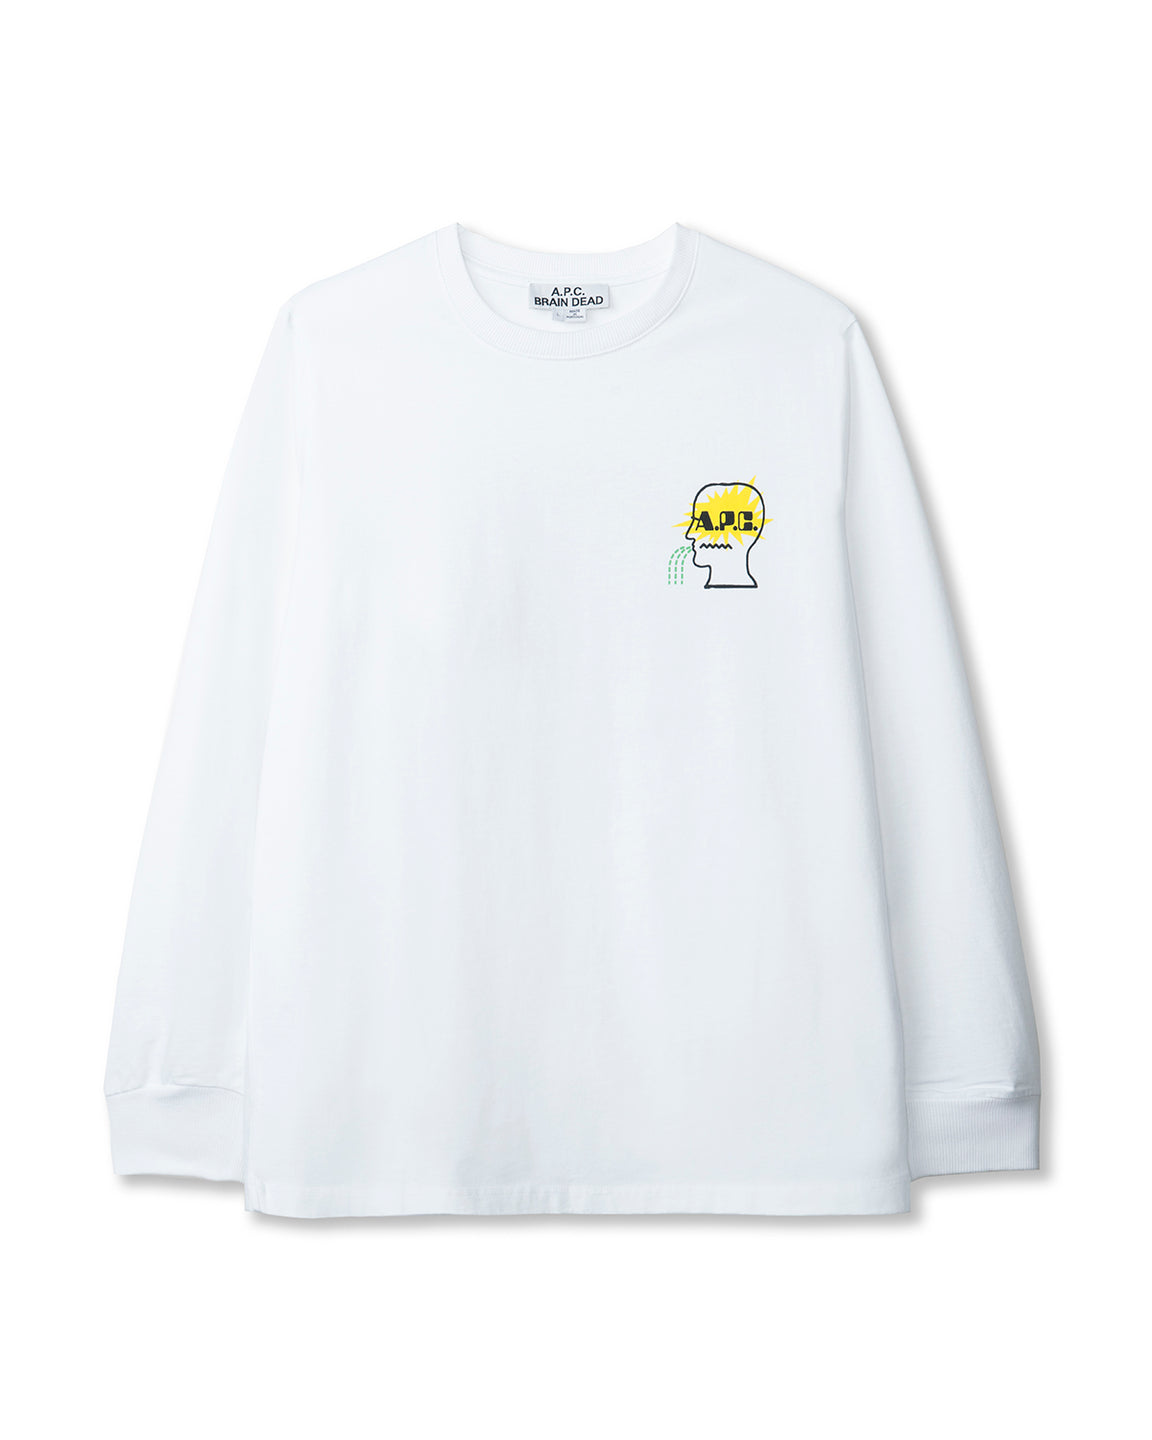 Men's Molly Long Sleeve Jersey T-Shirt A.P.C. x Brain Dead - White